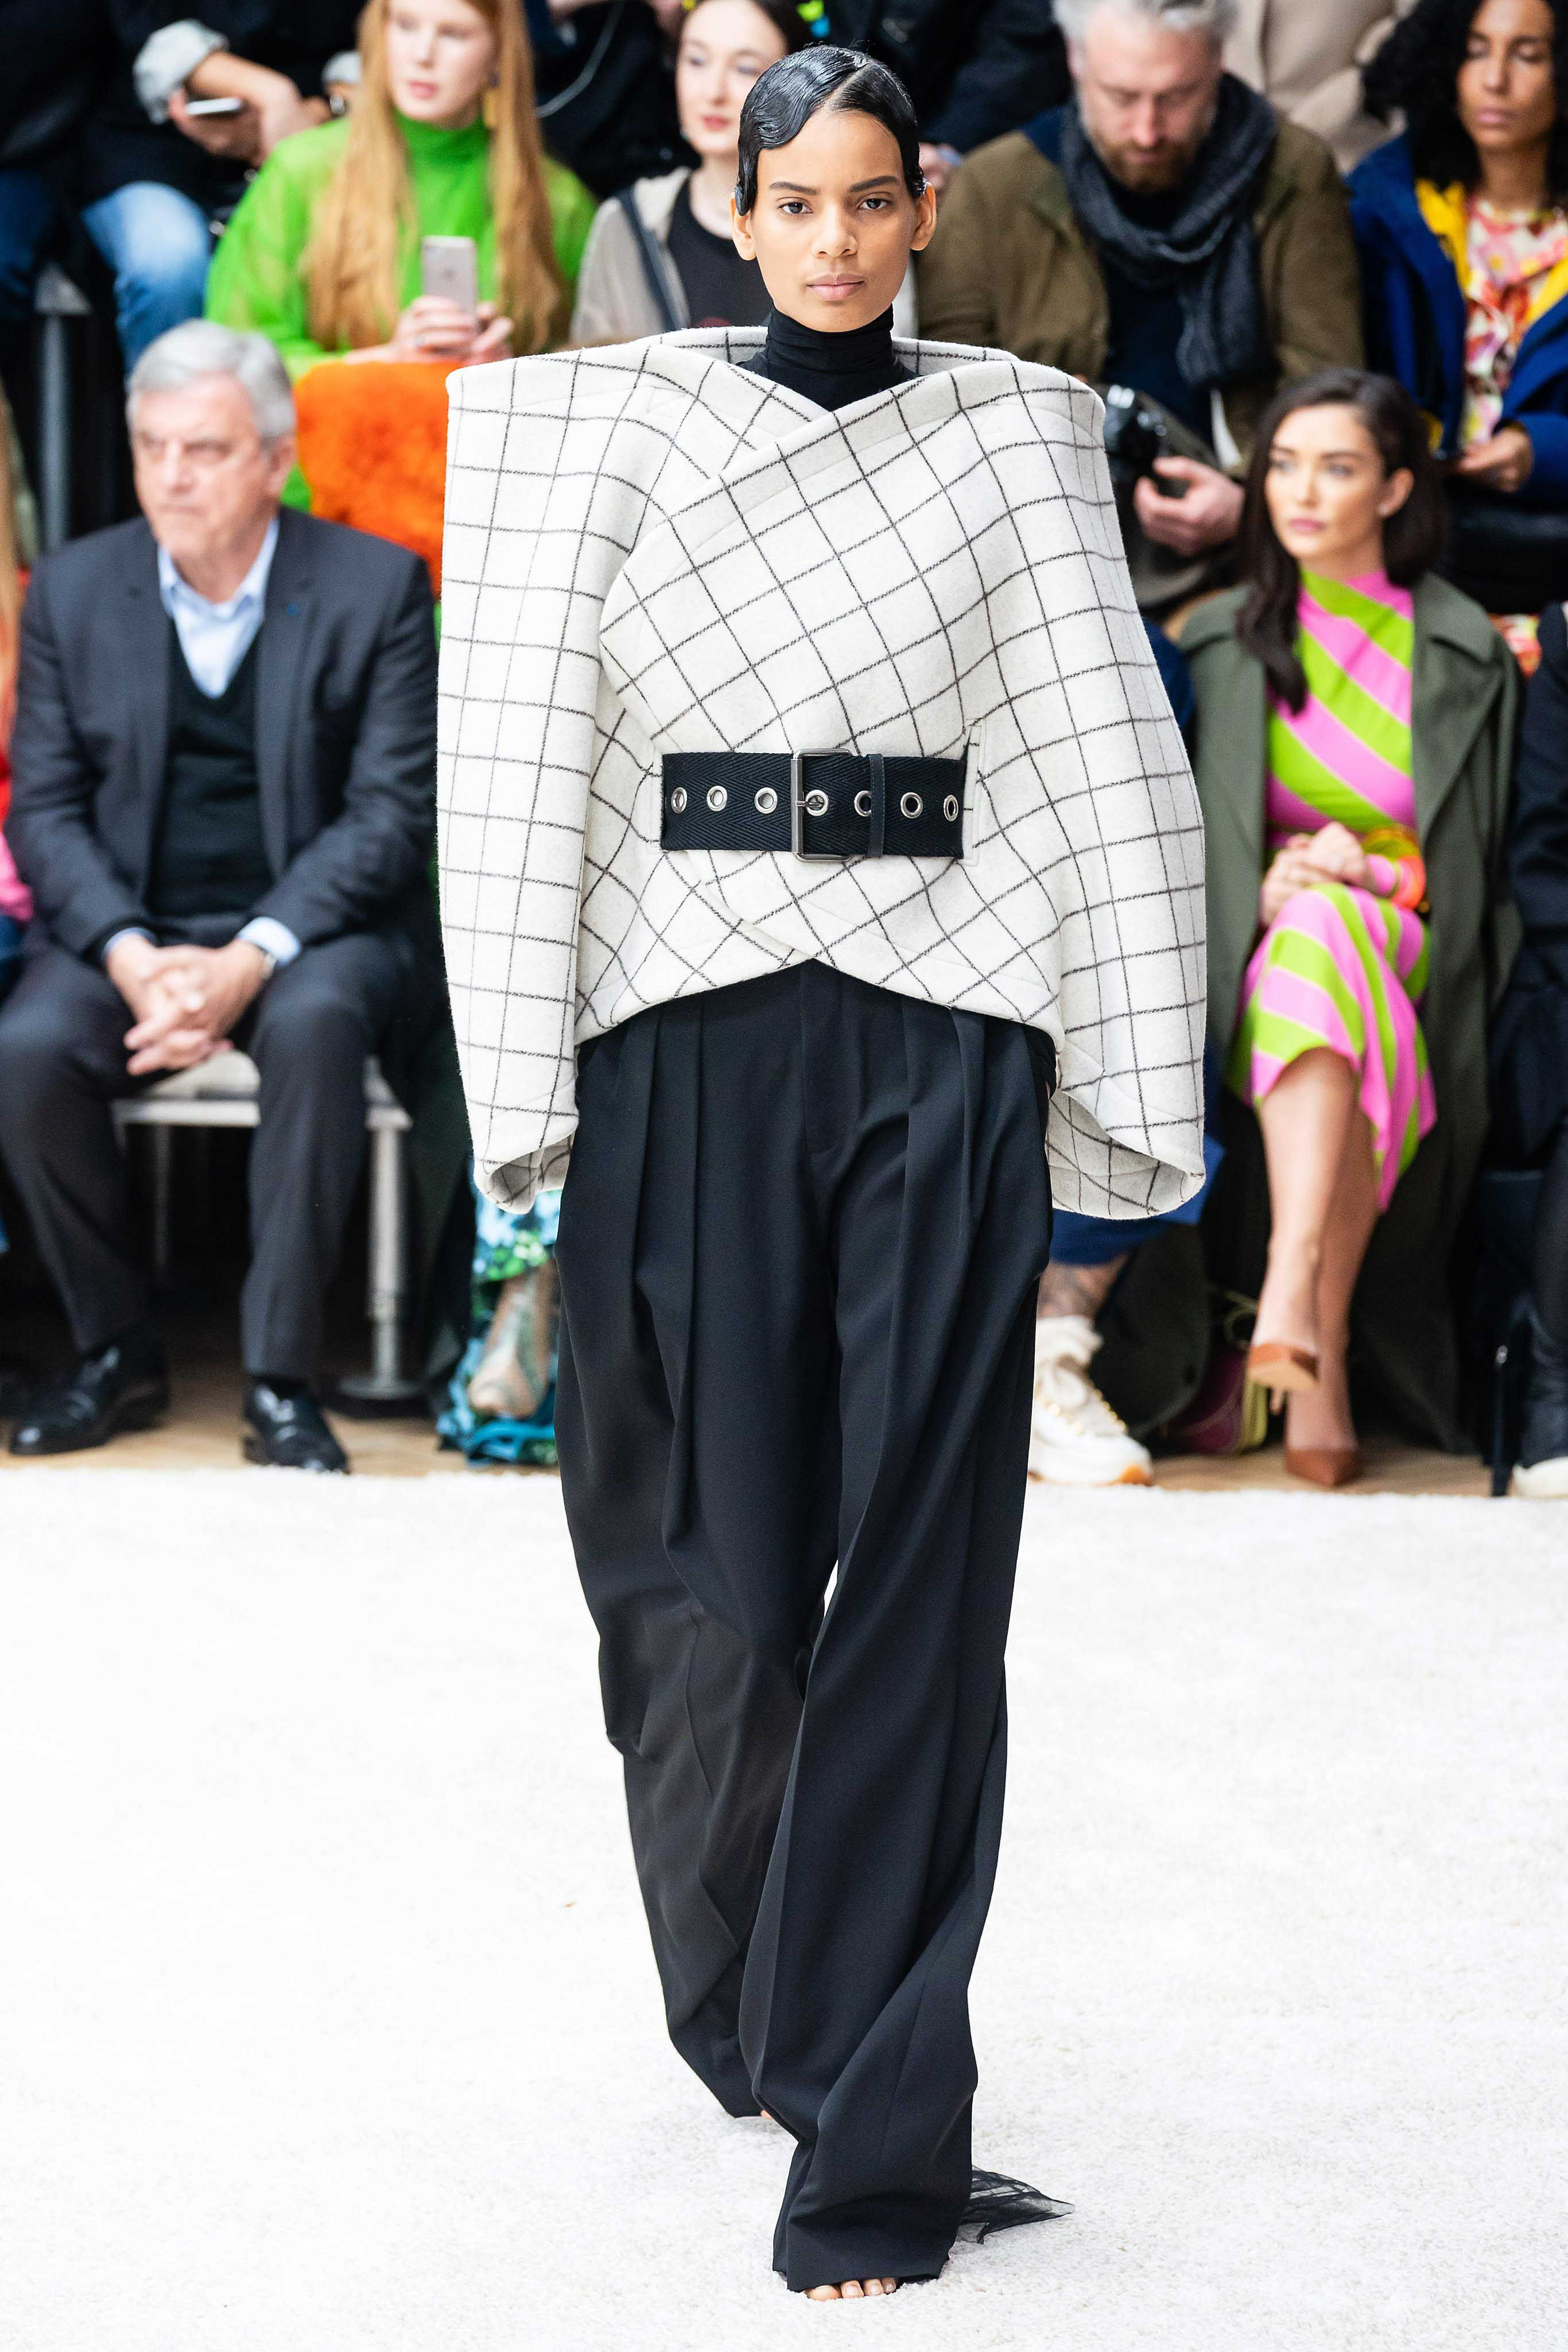 aeafbd750 Fall Winter 2019 2020 Trends - Fashion Week Coverage